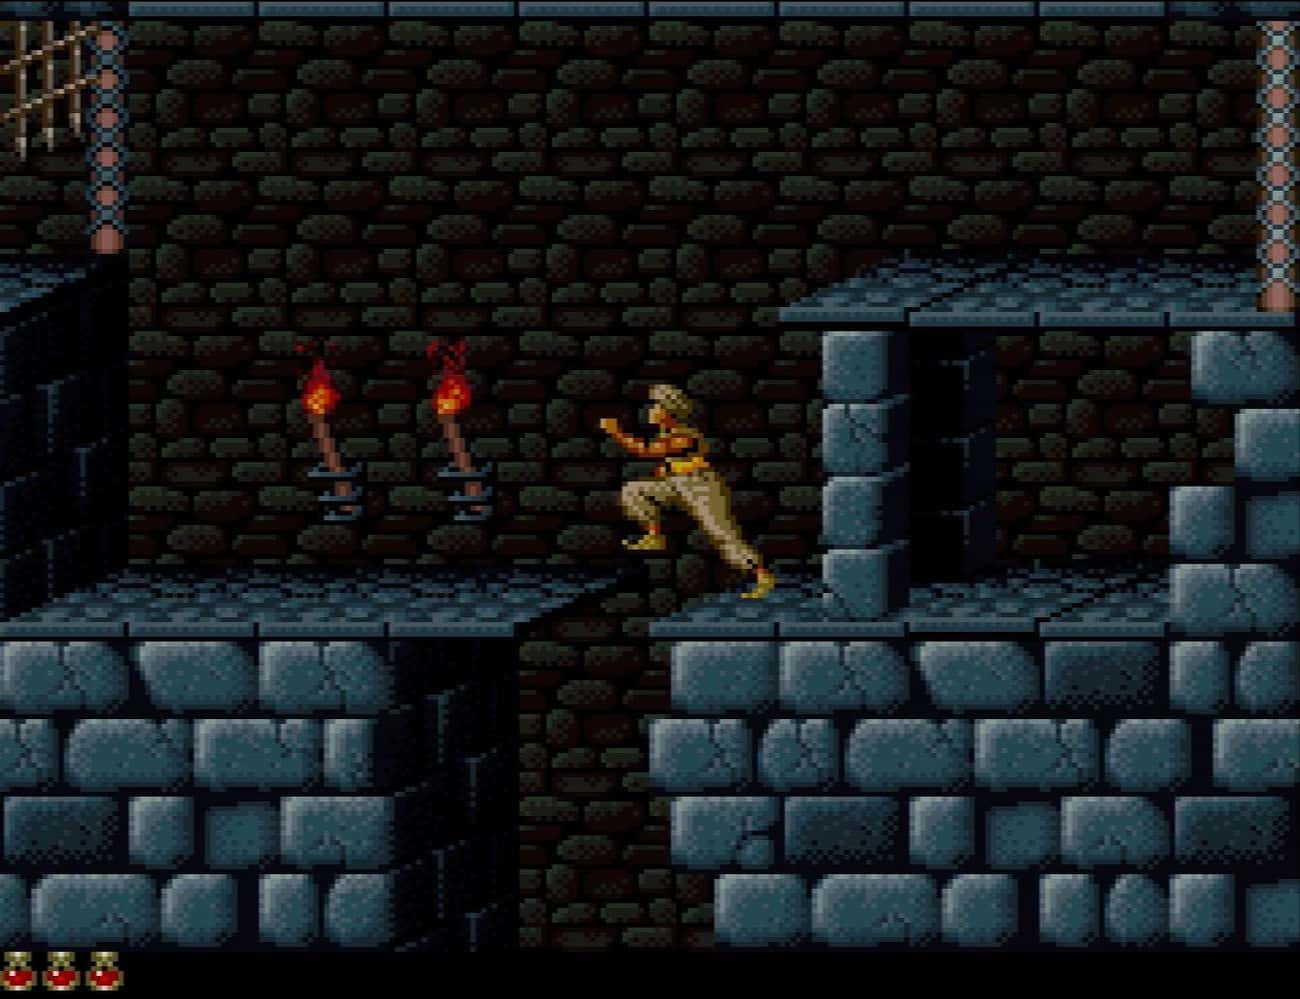 Prince Of Persia is listed (or ranked) 4 on the list 20 Super Nintendo Games That Are So Hard We're Still Trying To Beat Them